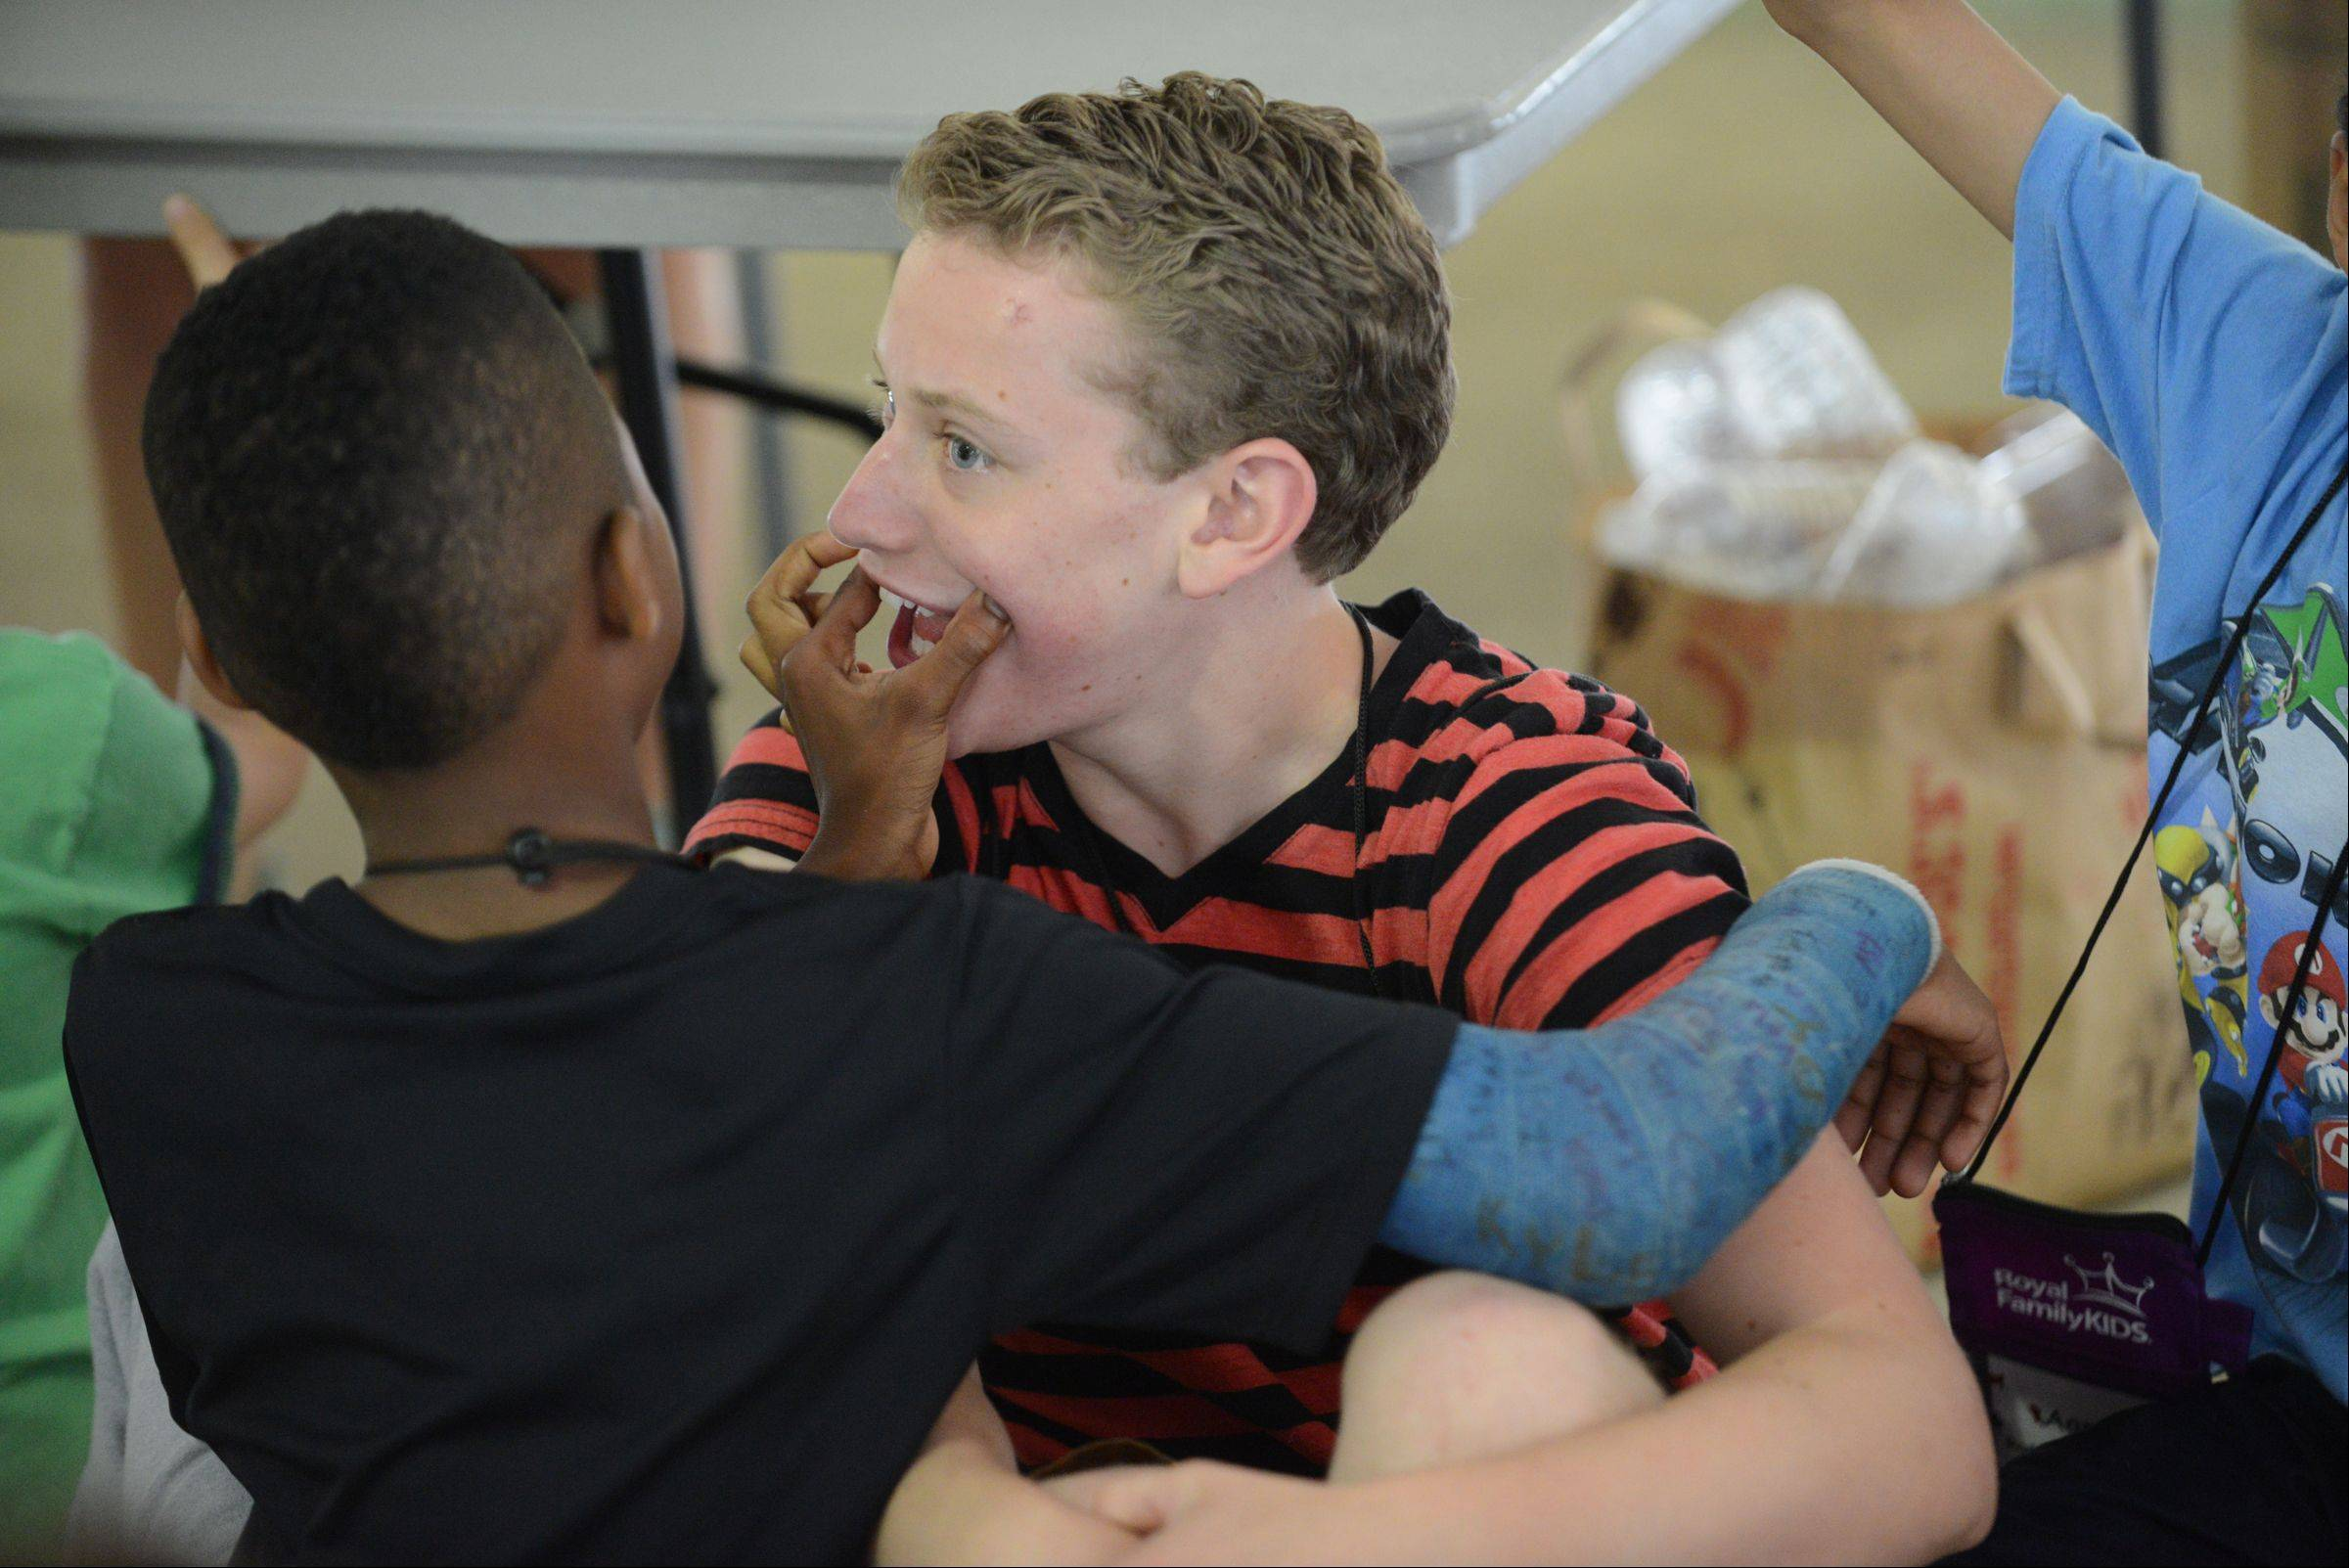 A Royal Family Kids Camp camper tries to put a smile on counselor Andy Kruse's face during camp. Andy is from Batavia.